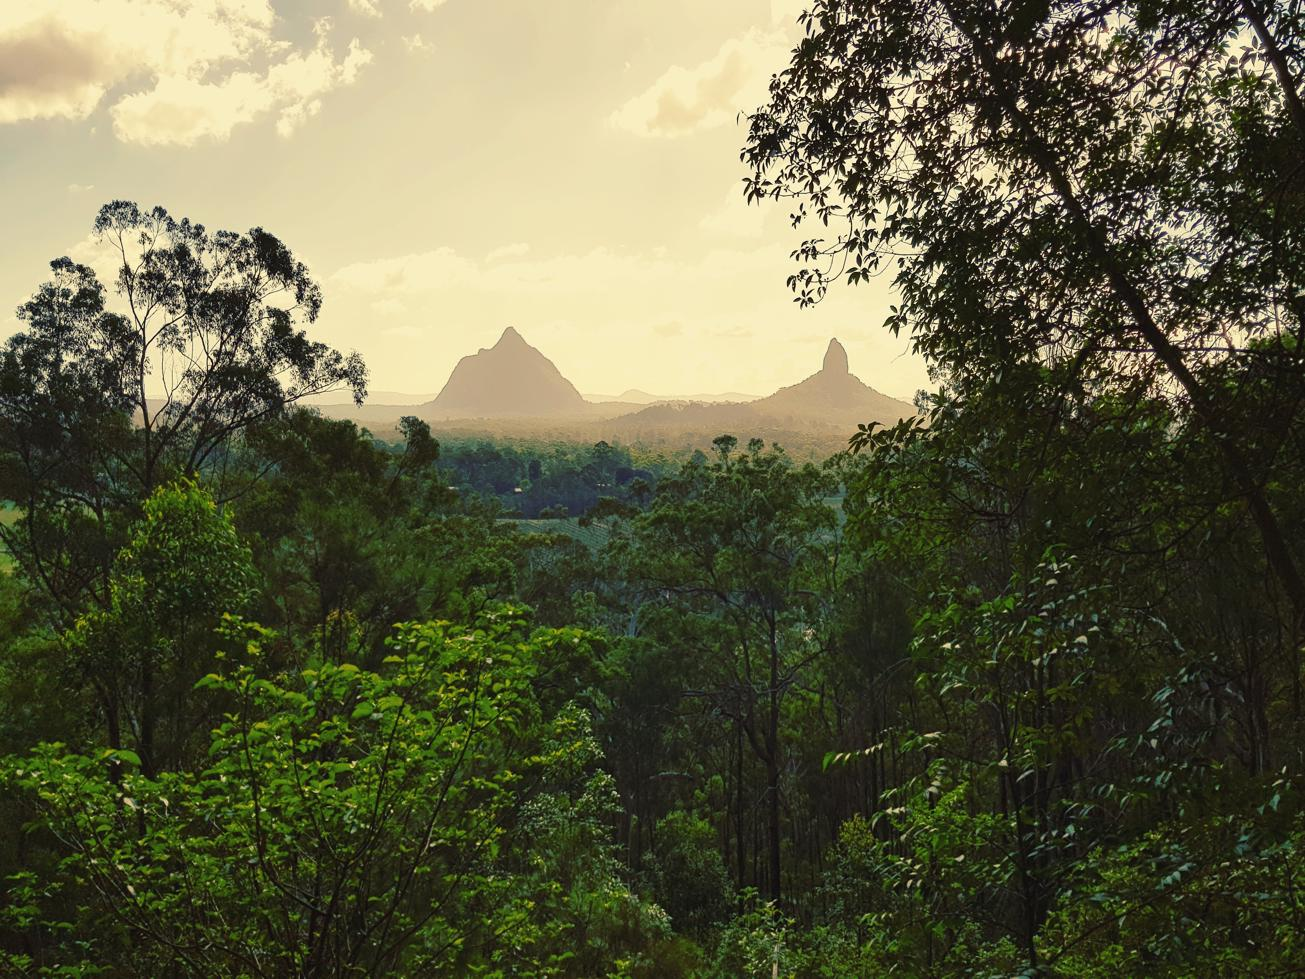 Trail Image for Glass House Mountains National Park: Tibrogargan Circuit